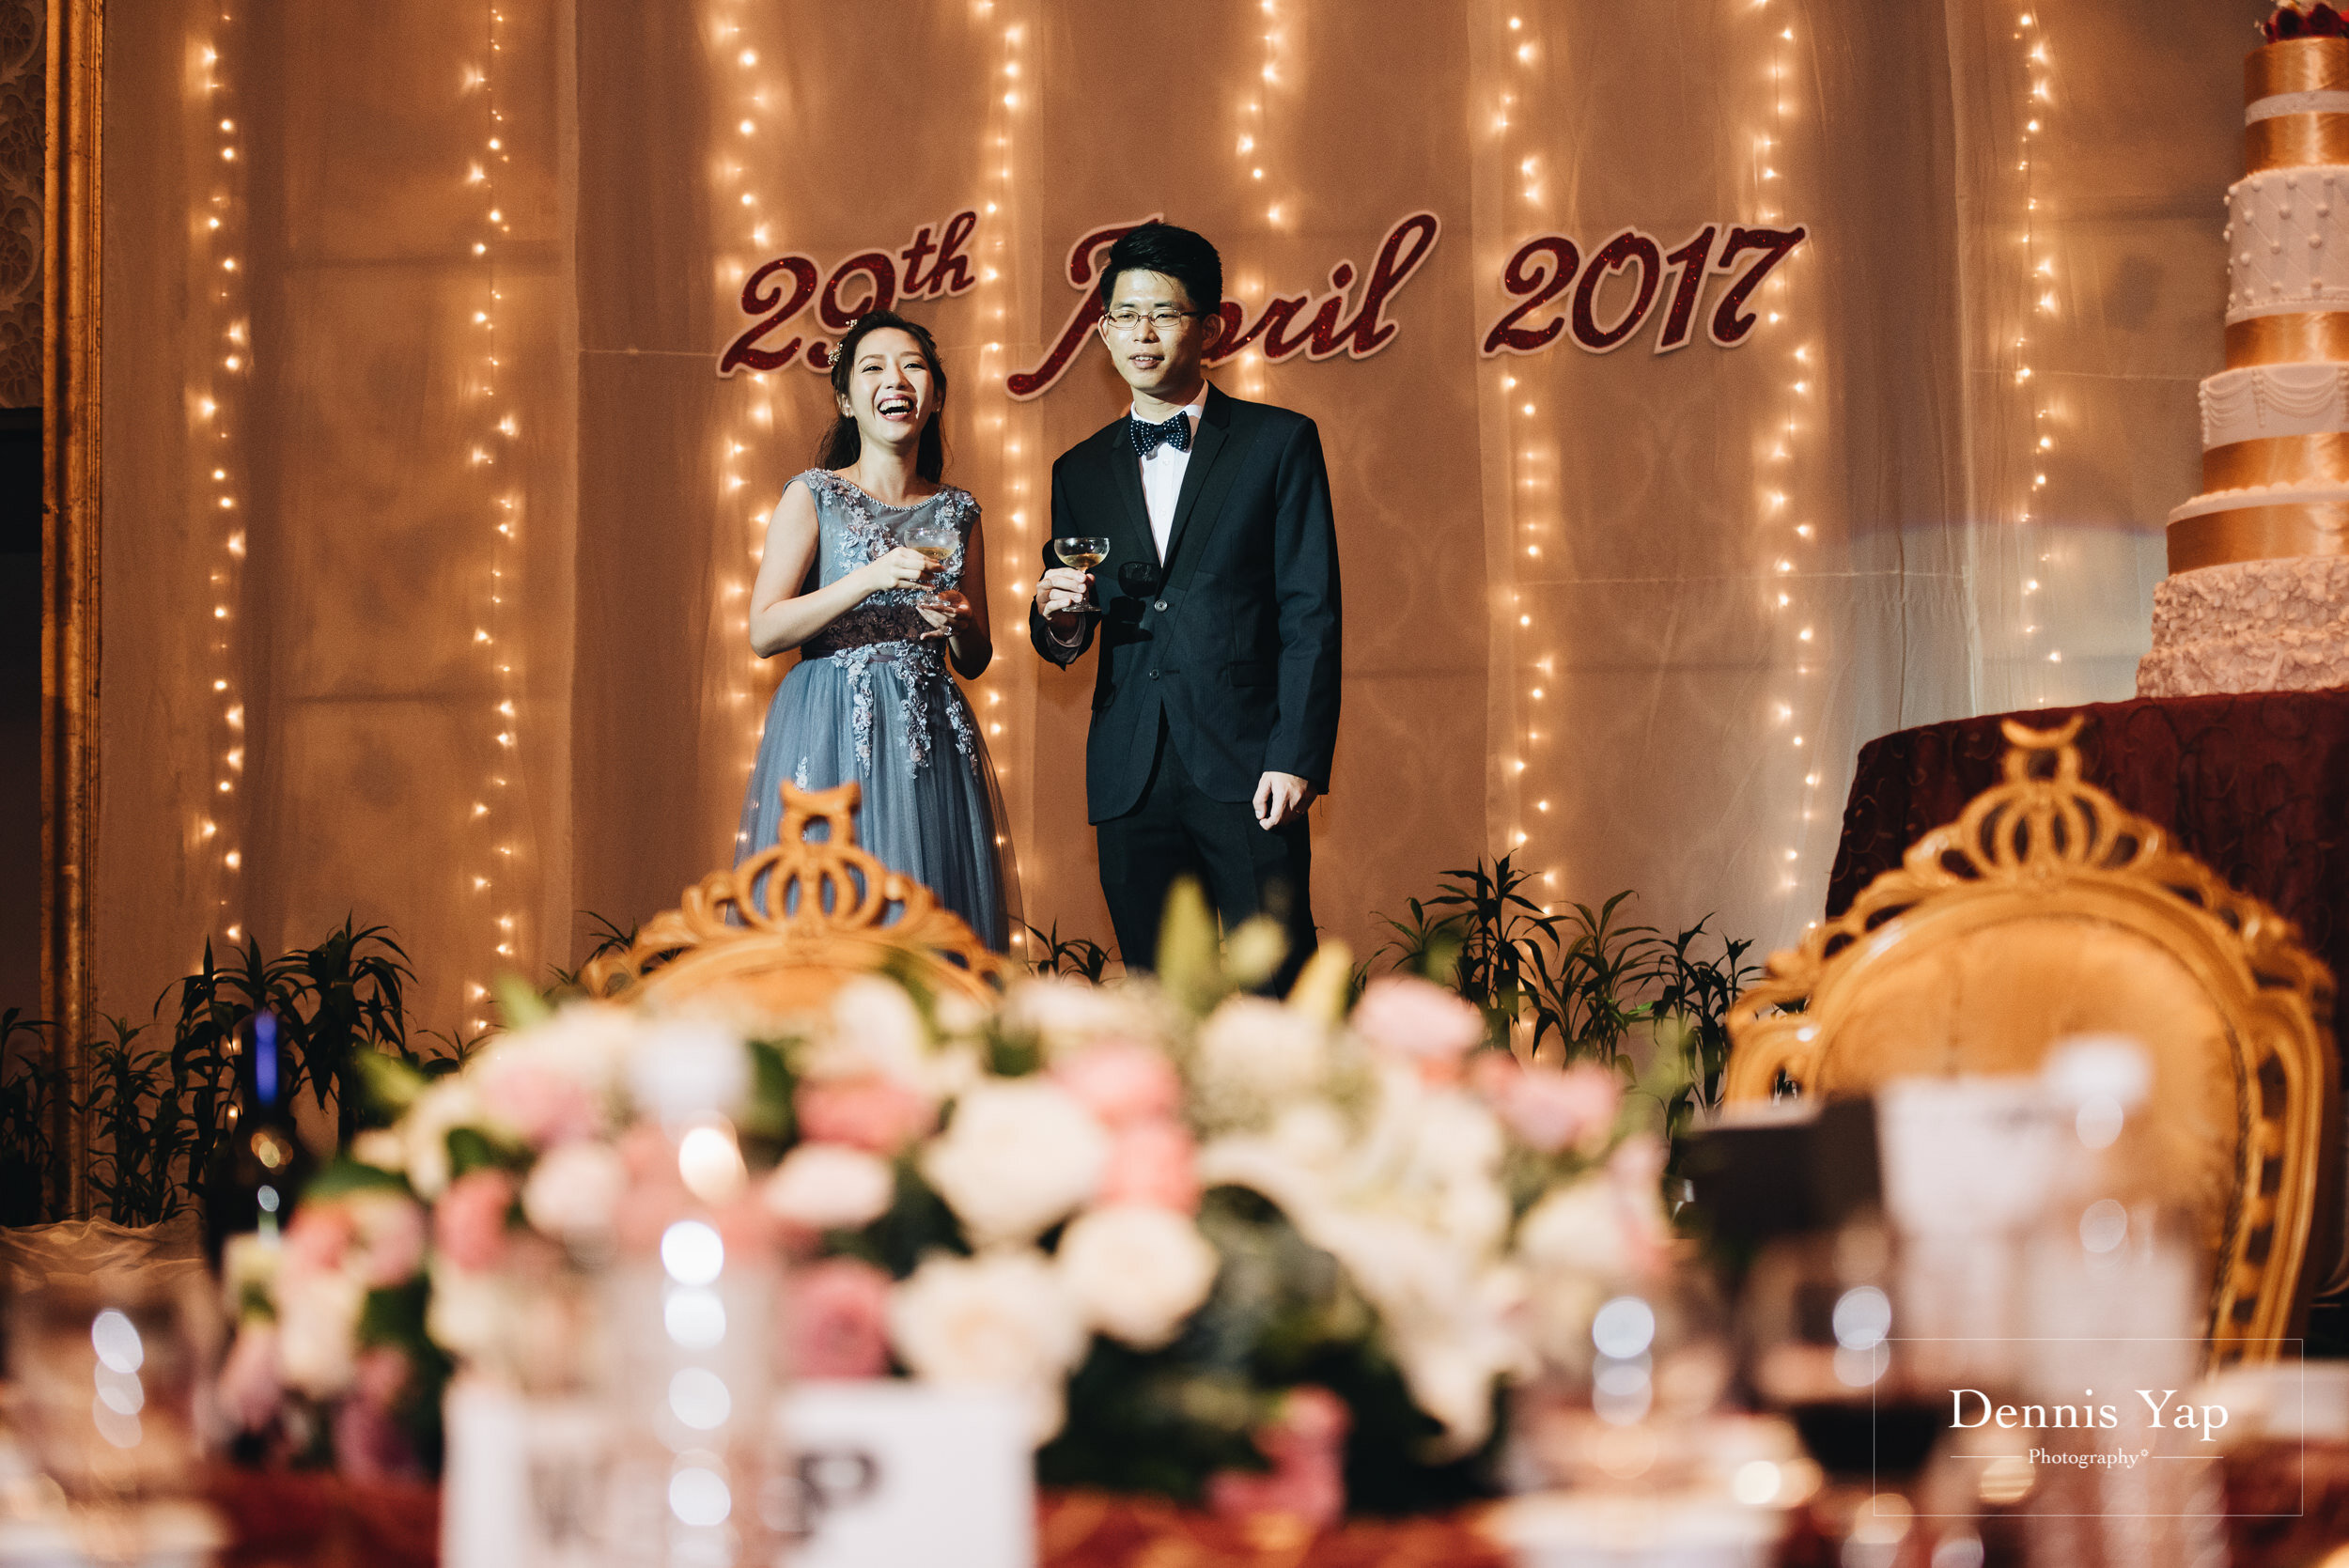 louis su yan wedding dinner dorsett grand subang dennis yap photography-120.jpg